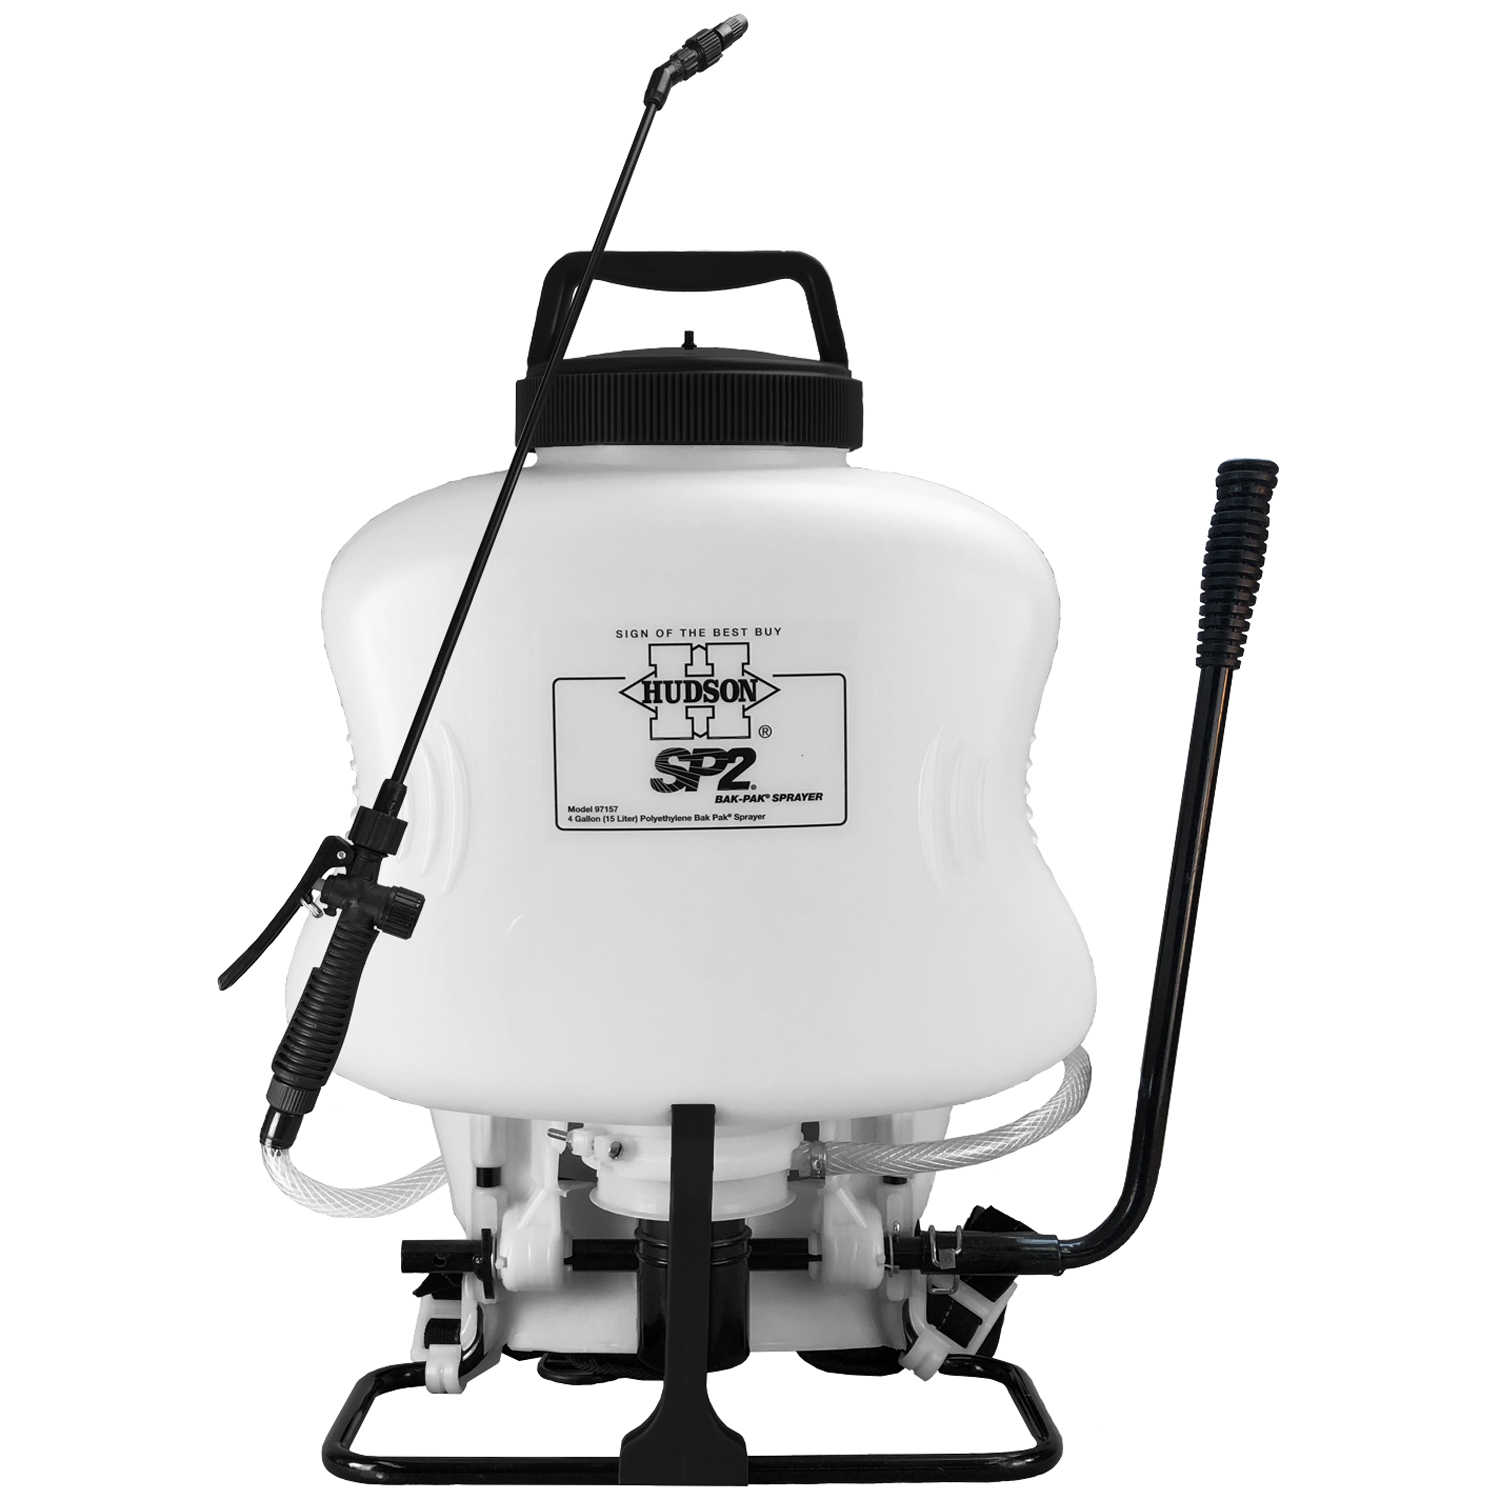 Hudson commercial backpack sprayer youngman 301000